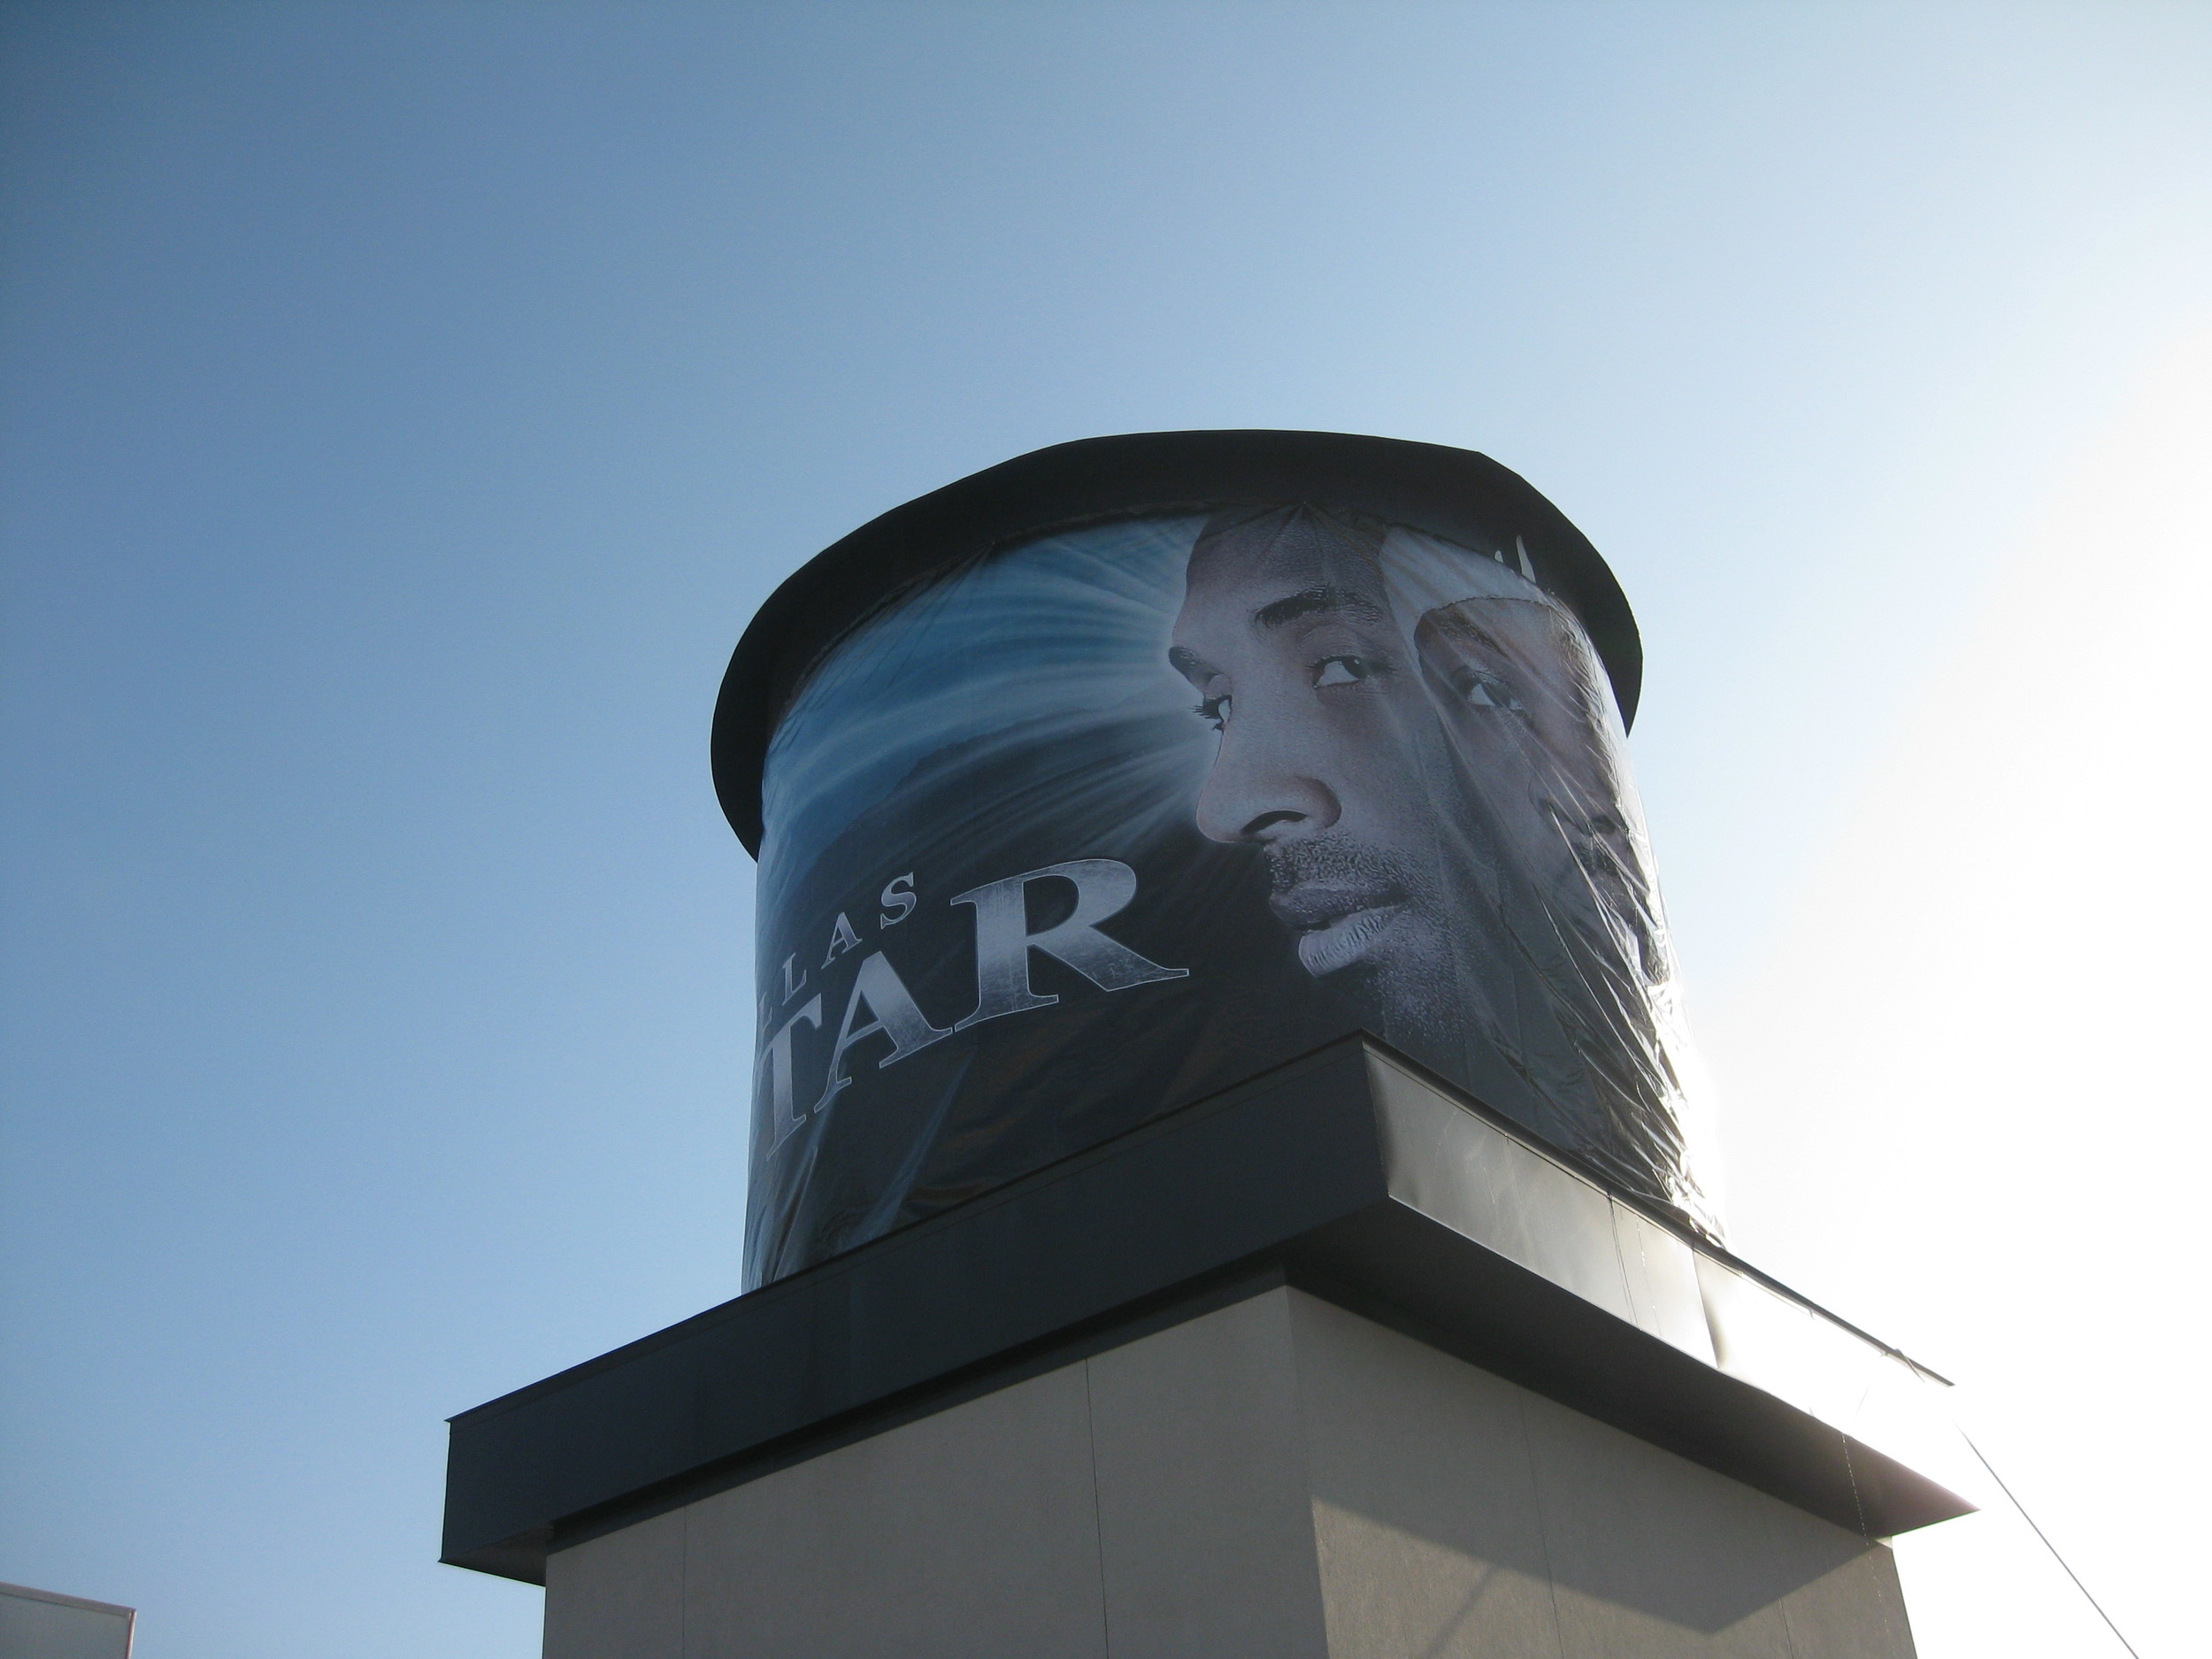 Water tower wrap in Dallas